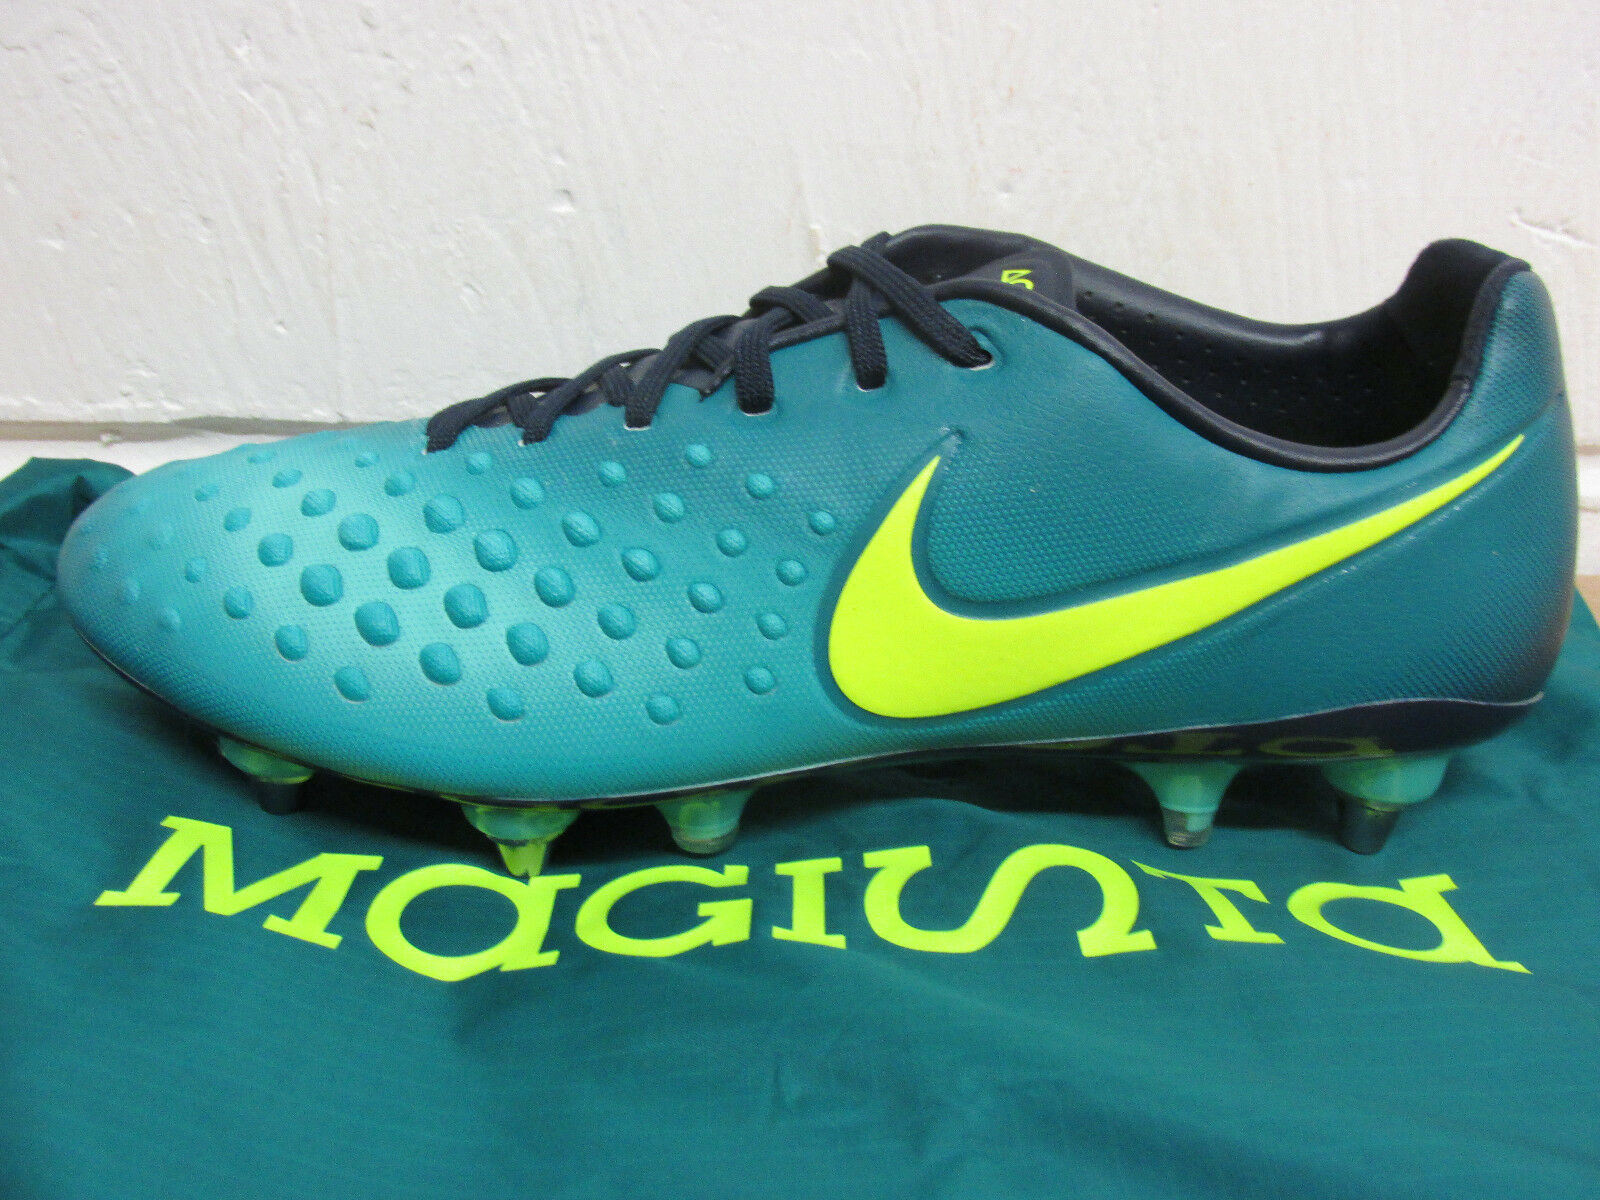 Nike Magista Opus 376 II SG-Pro Hommes Football Bottes 844597 376 Opus Baskets Chaussures 305127